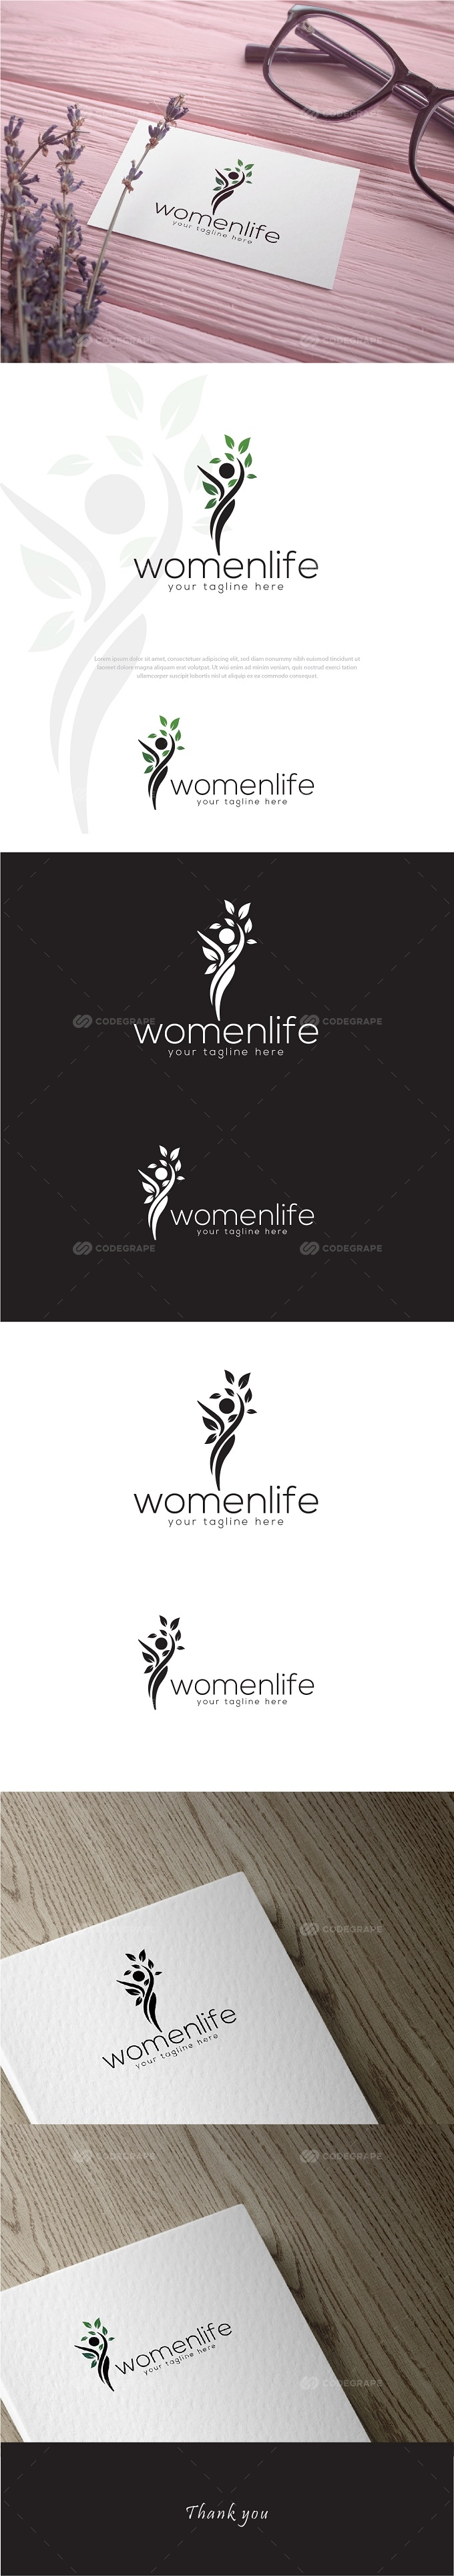 Womenlife Logo Design